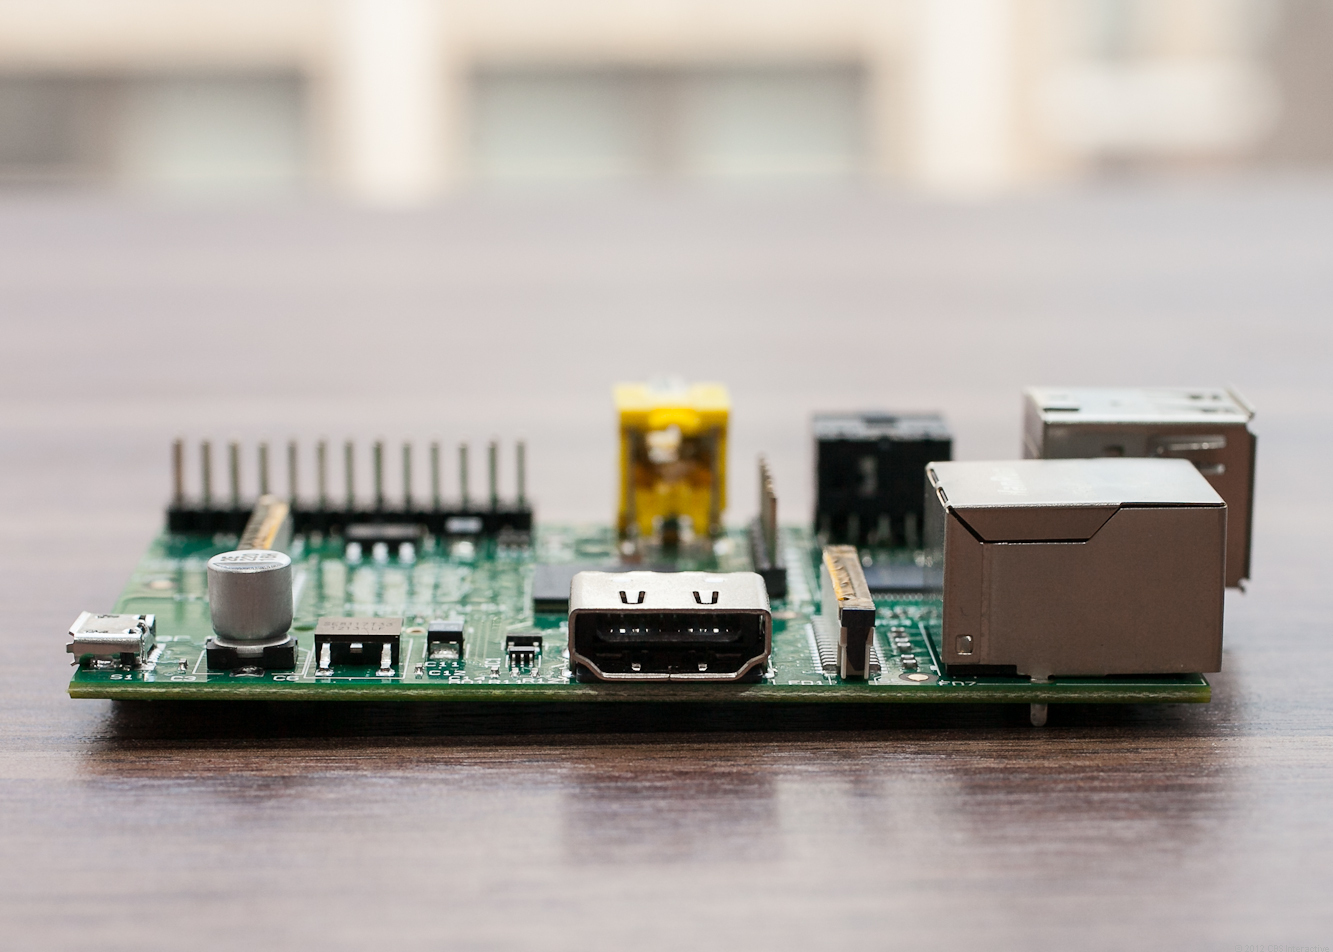 The Raspberry Pi's HDMI port, with the Micro-USB power input on the left edge.